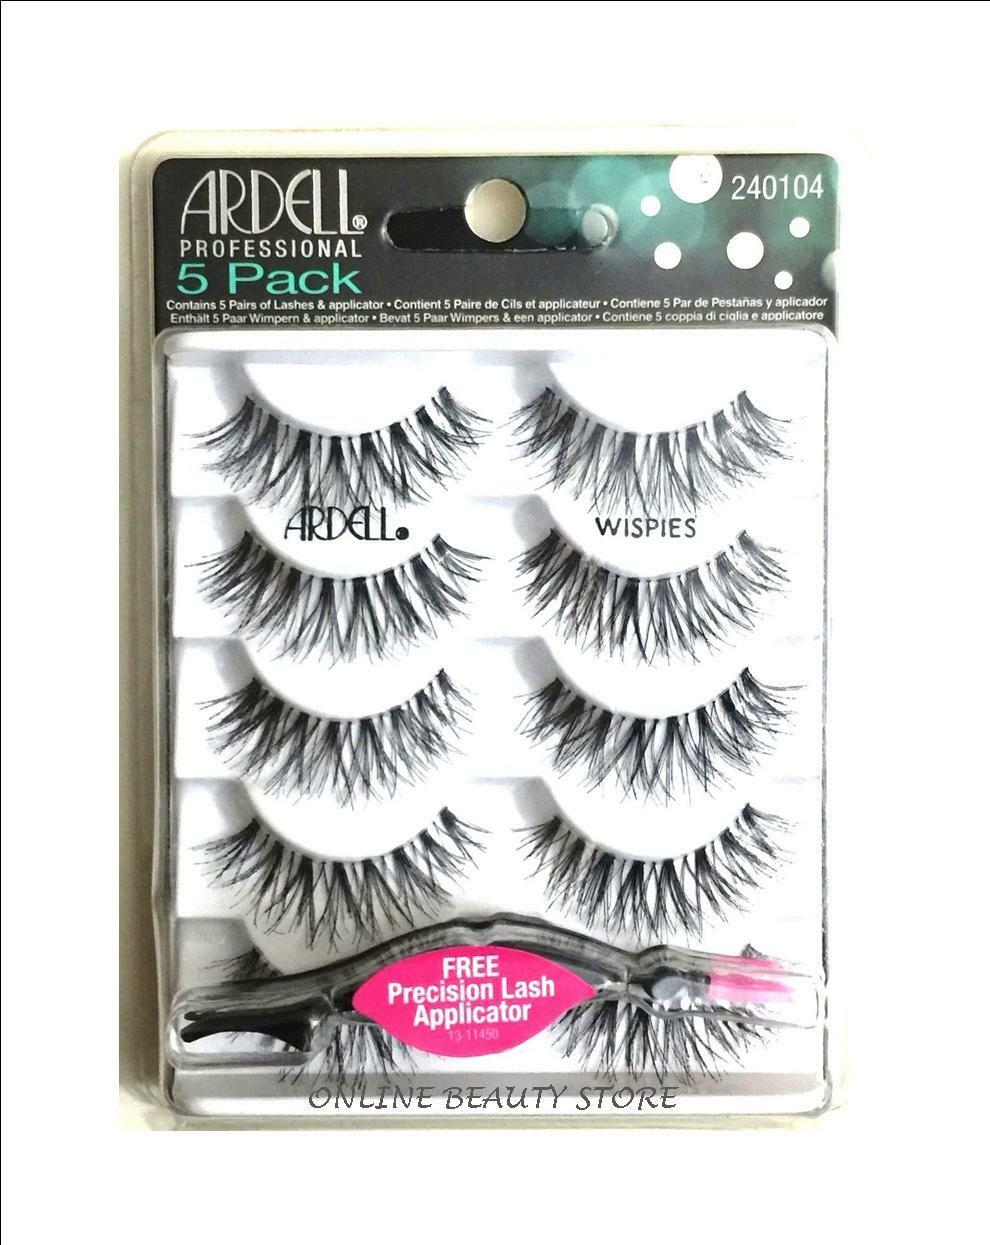 e71ab4c1085 Ardell Lashes Wispies Black 5 Pack for sale online | eBay